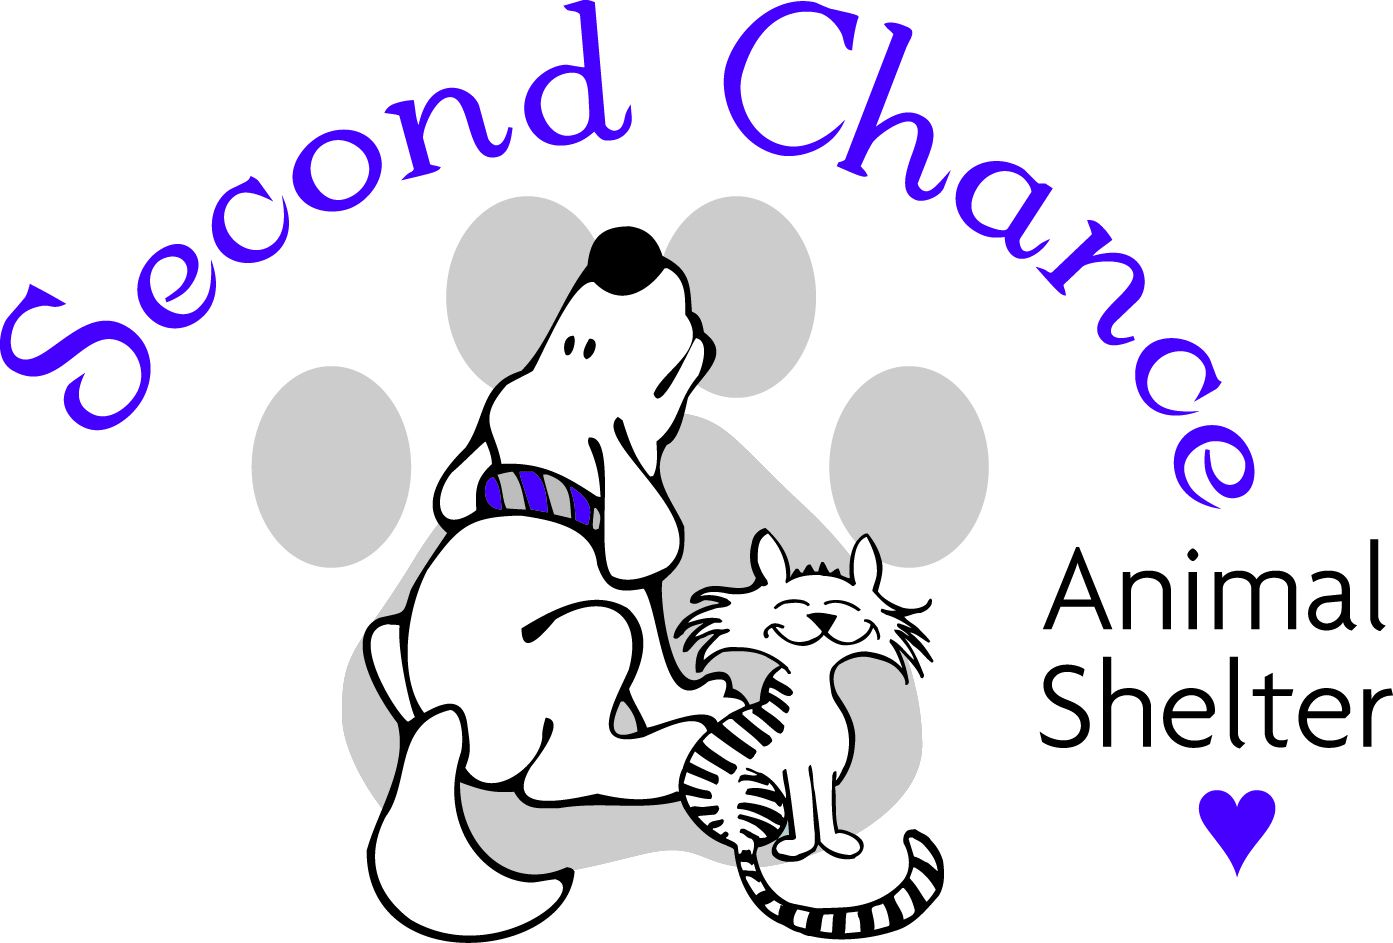 Second Chance receives $500 grant